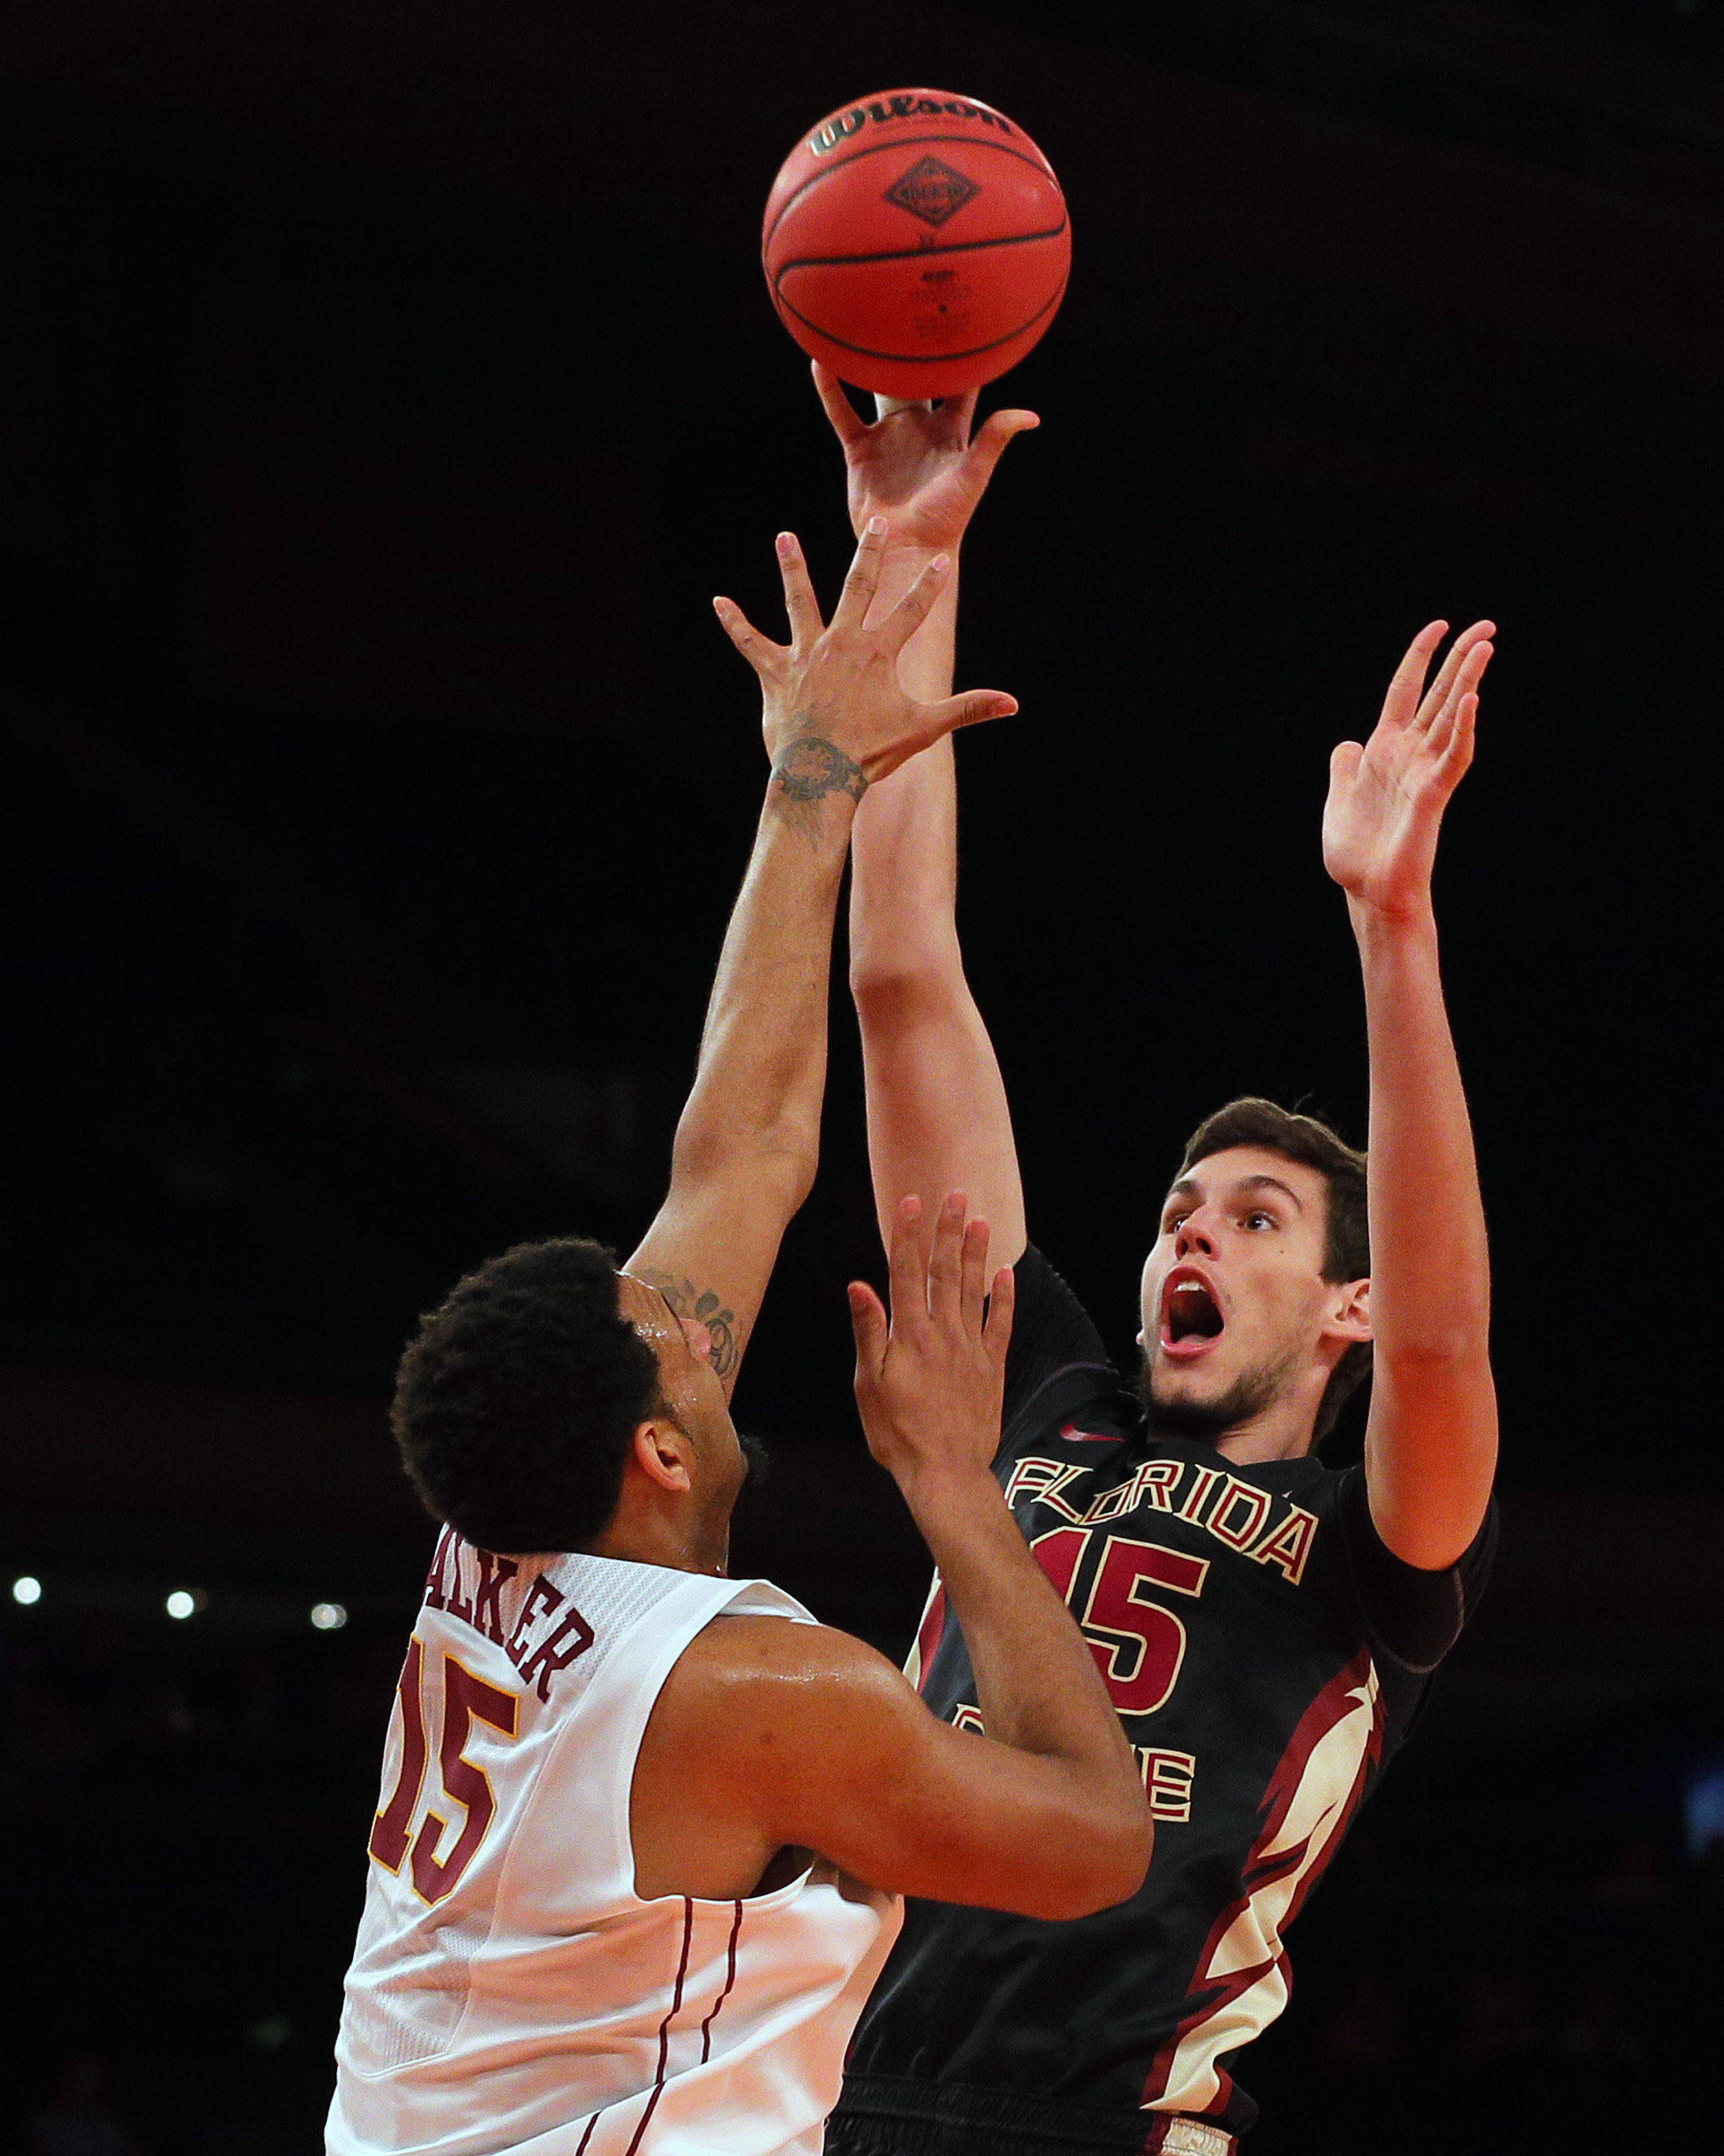 Apr 1, 2014; New York, NY, USA; Florida State Seminoles center Boris Bojanovsky (15) shoots over Minnesota Golden Gophers forward Maurice Walker (15) during the first half at Madison Square Garden. Mandatory Credit: Adam Hunger-USA TODAY Sports